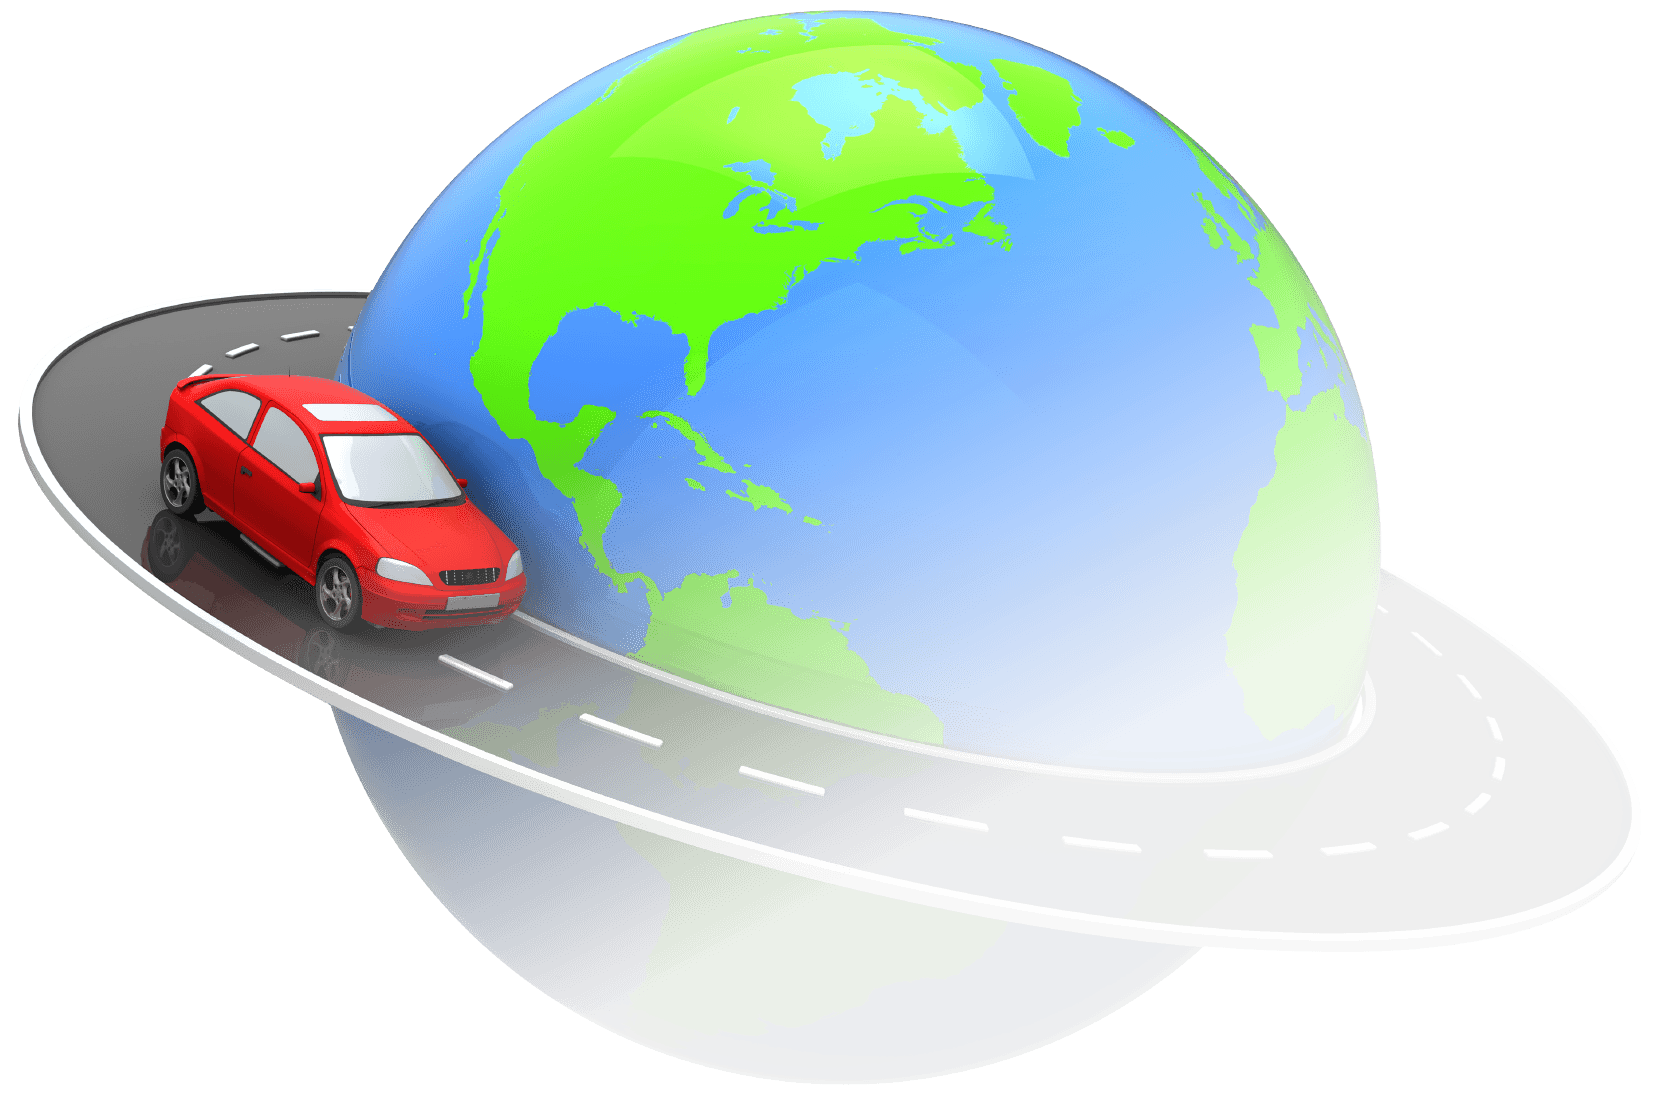 Car traveling around the world